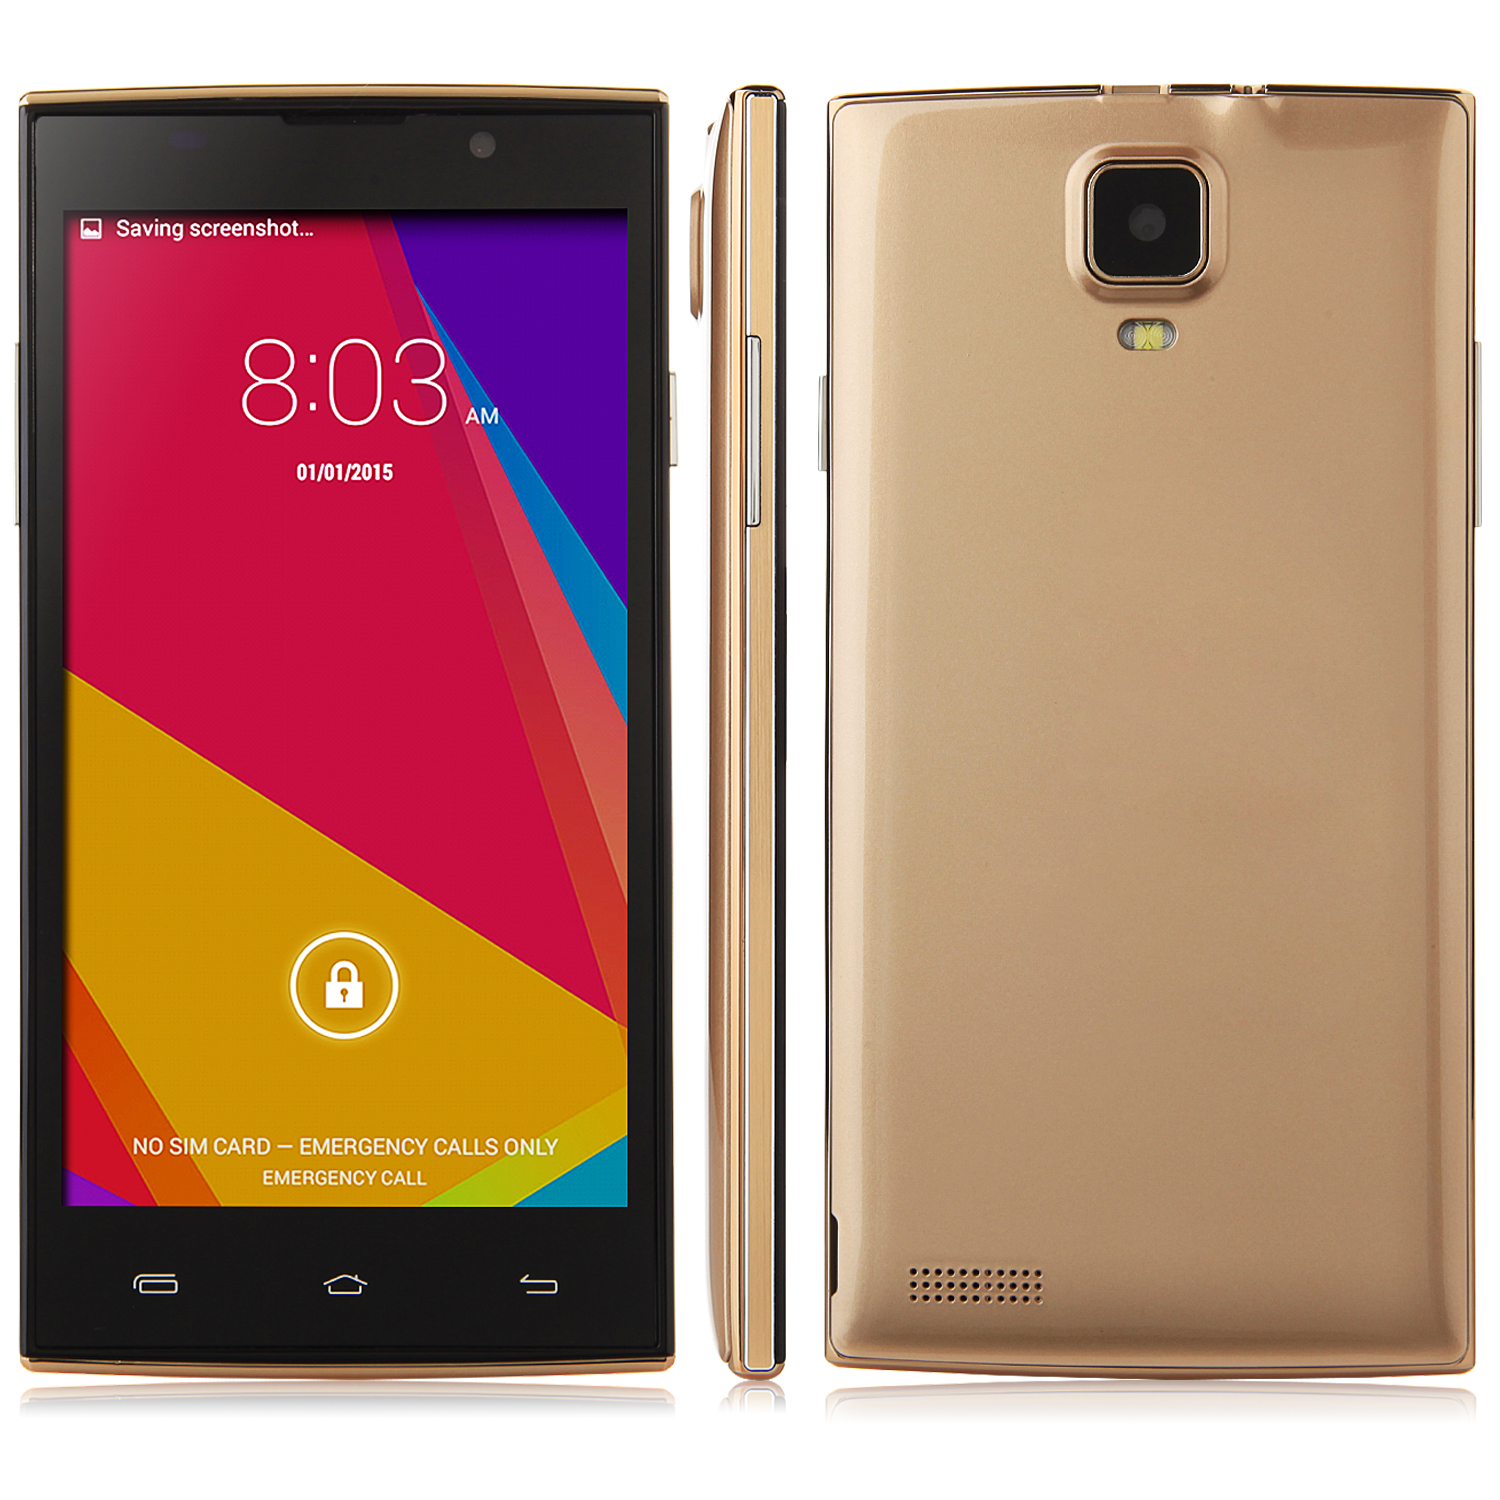 N730 Smartphone Android 4.4 MTK6582 5.0 inch QHD 3G GPS 1G 8G Smart Wake - Golden